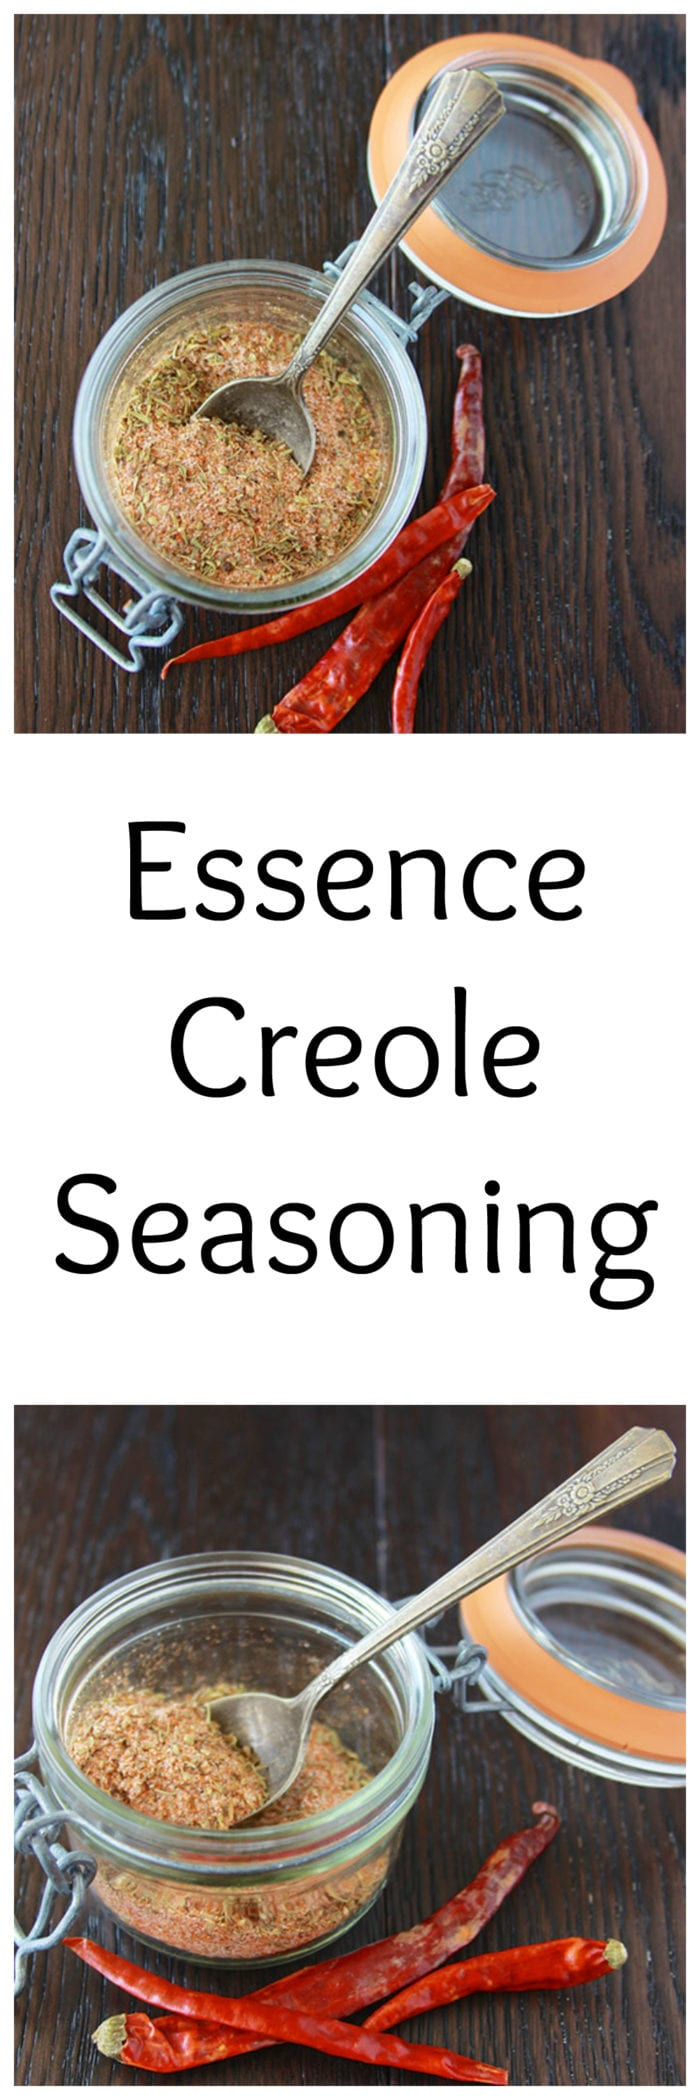 Essence Creole Seasoning is a must have in all southern food, now you can make it at home! www.cookingwithruthie.com